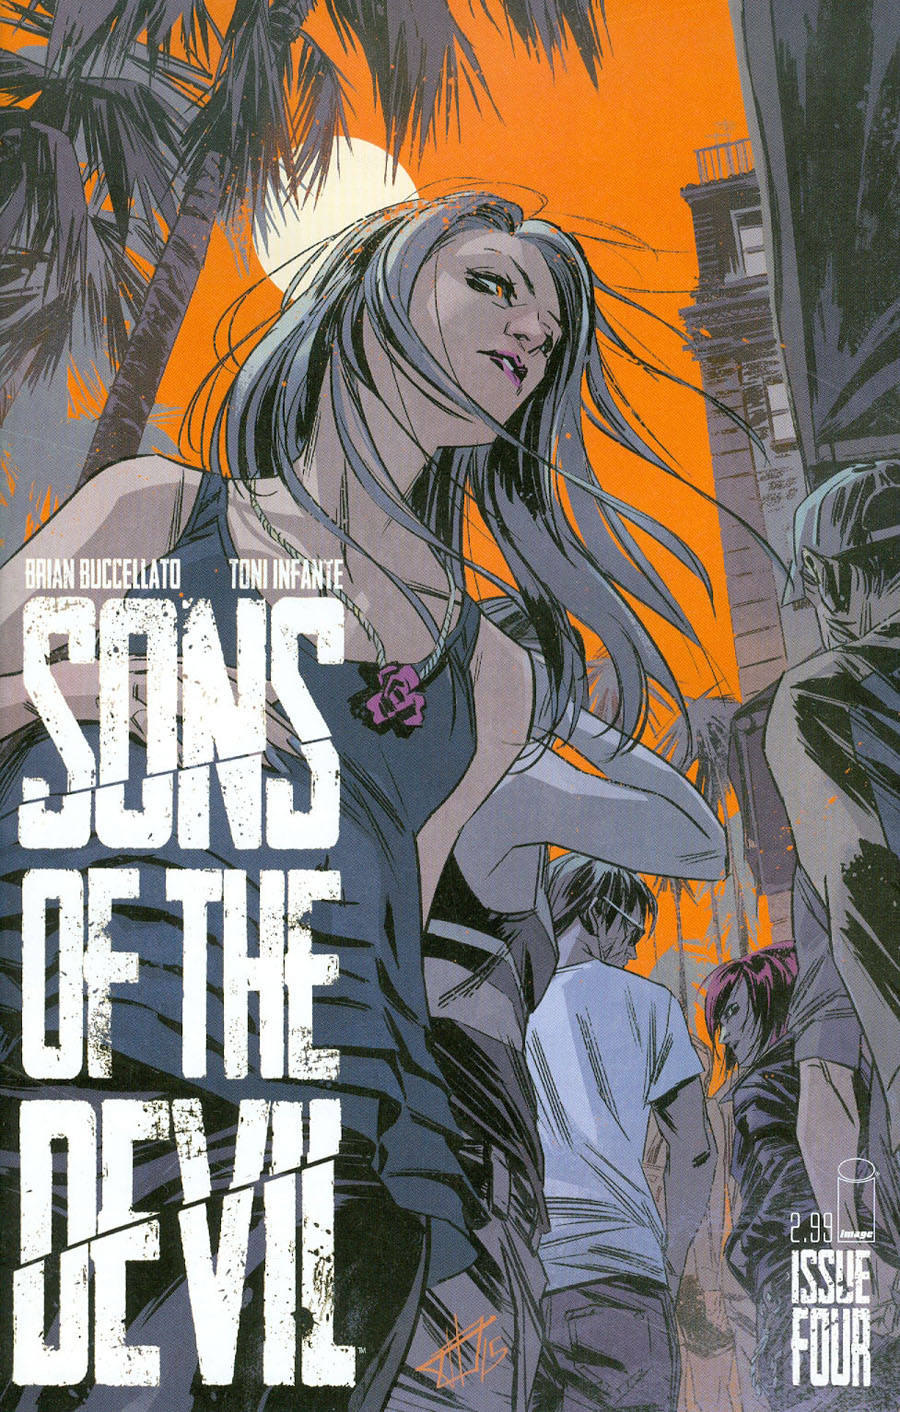 Sons Of The Devil #4 Cover A Toni Infante